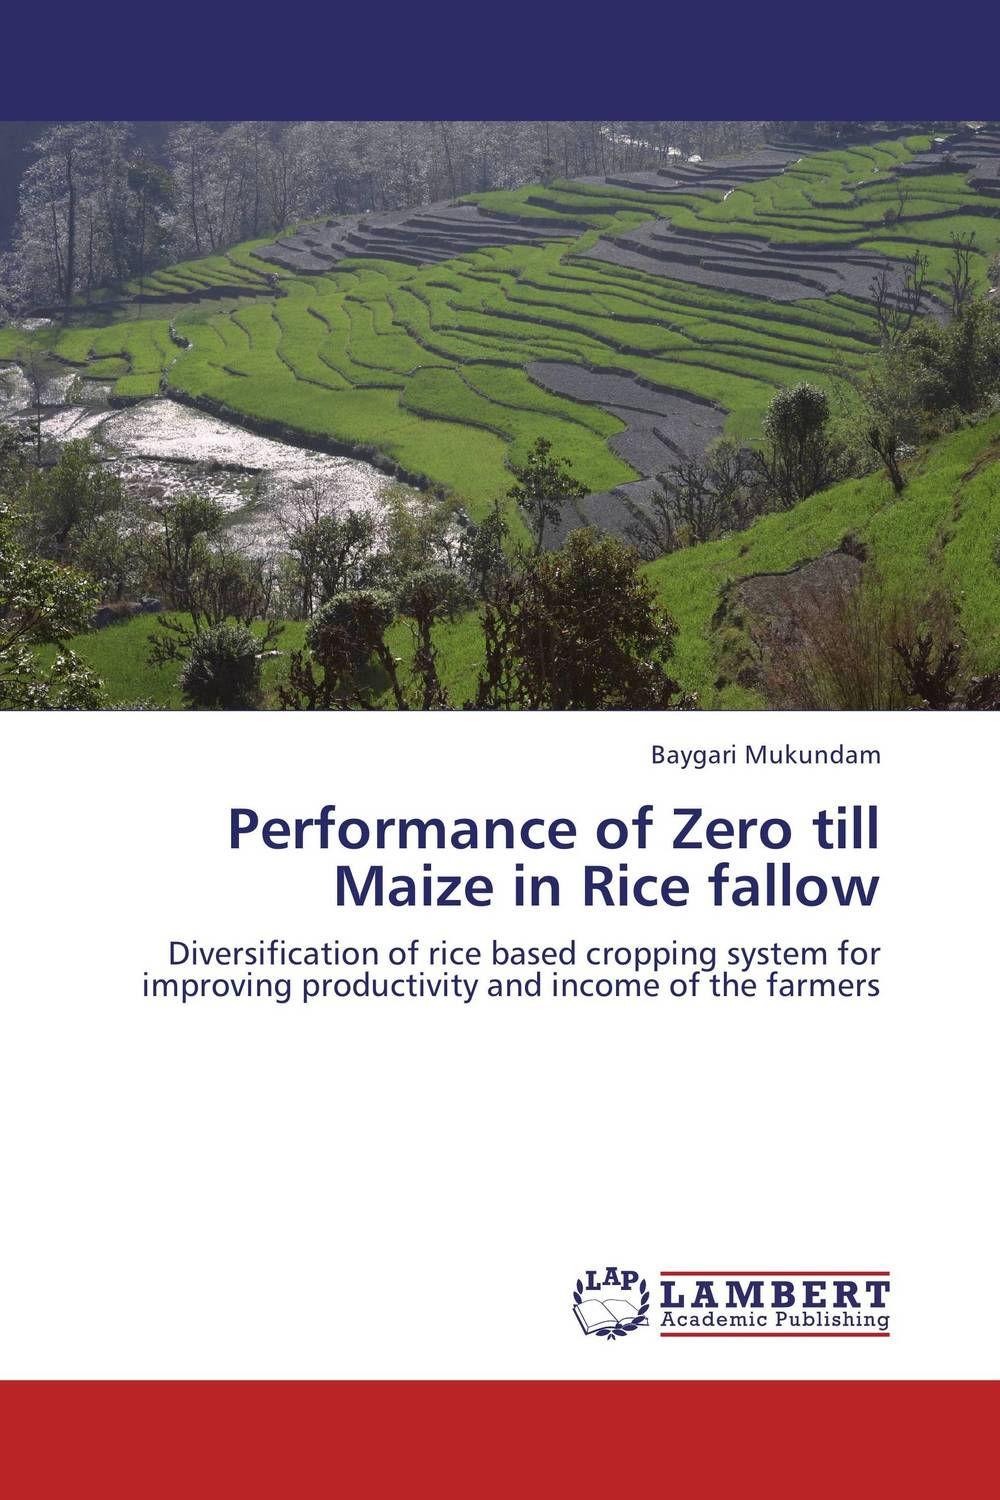 Performance of Zero till Maize in Rice fallow eric tyson home buying kit for dummies